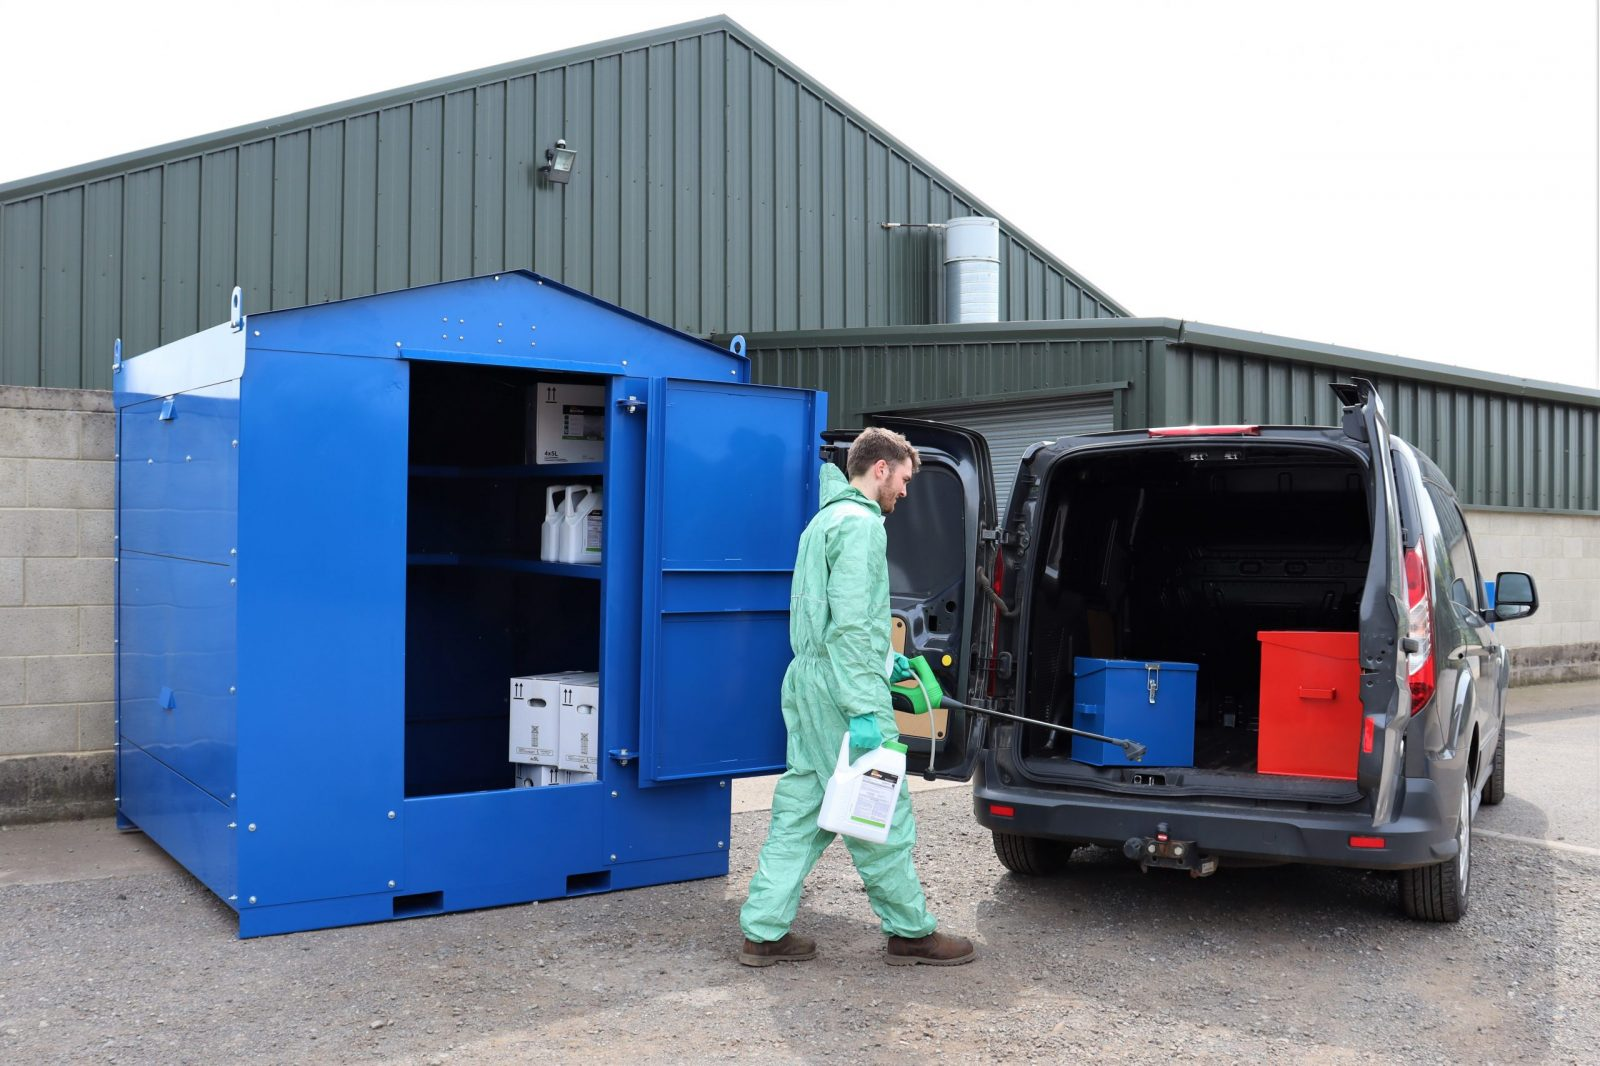 The VCS1500 walk-in chemical store meets current Health & Safety requirements. Designed and made by VALE Engineering in the UK.